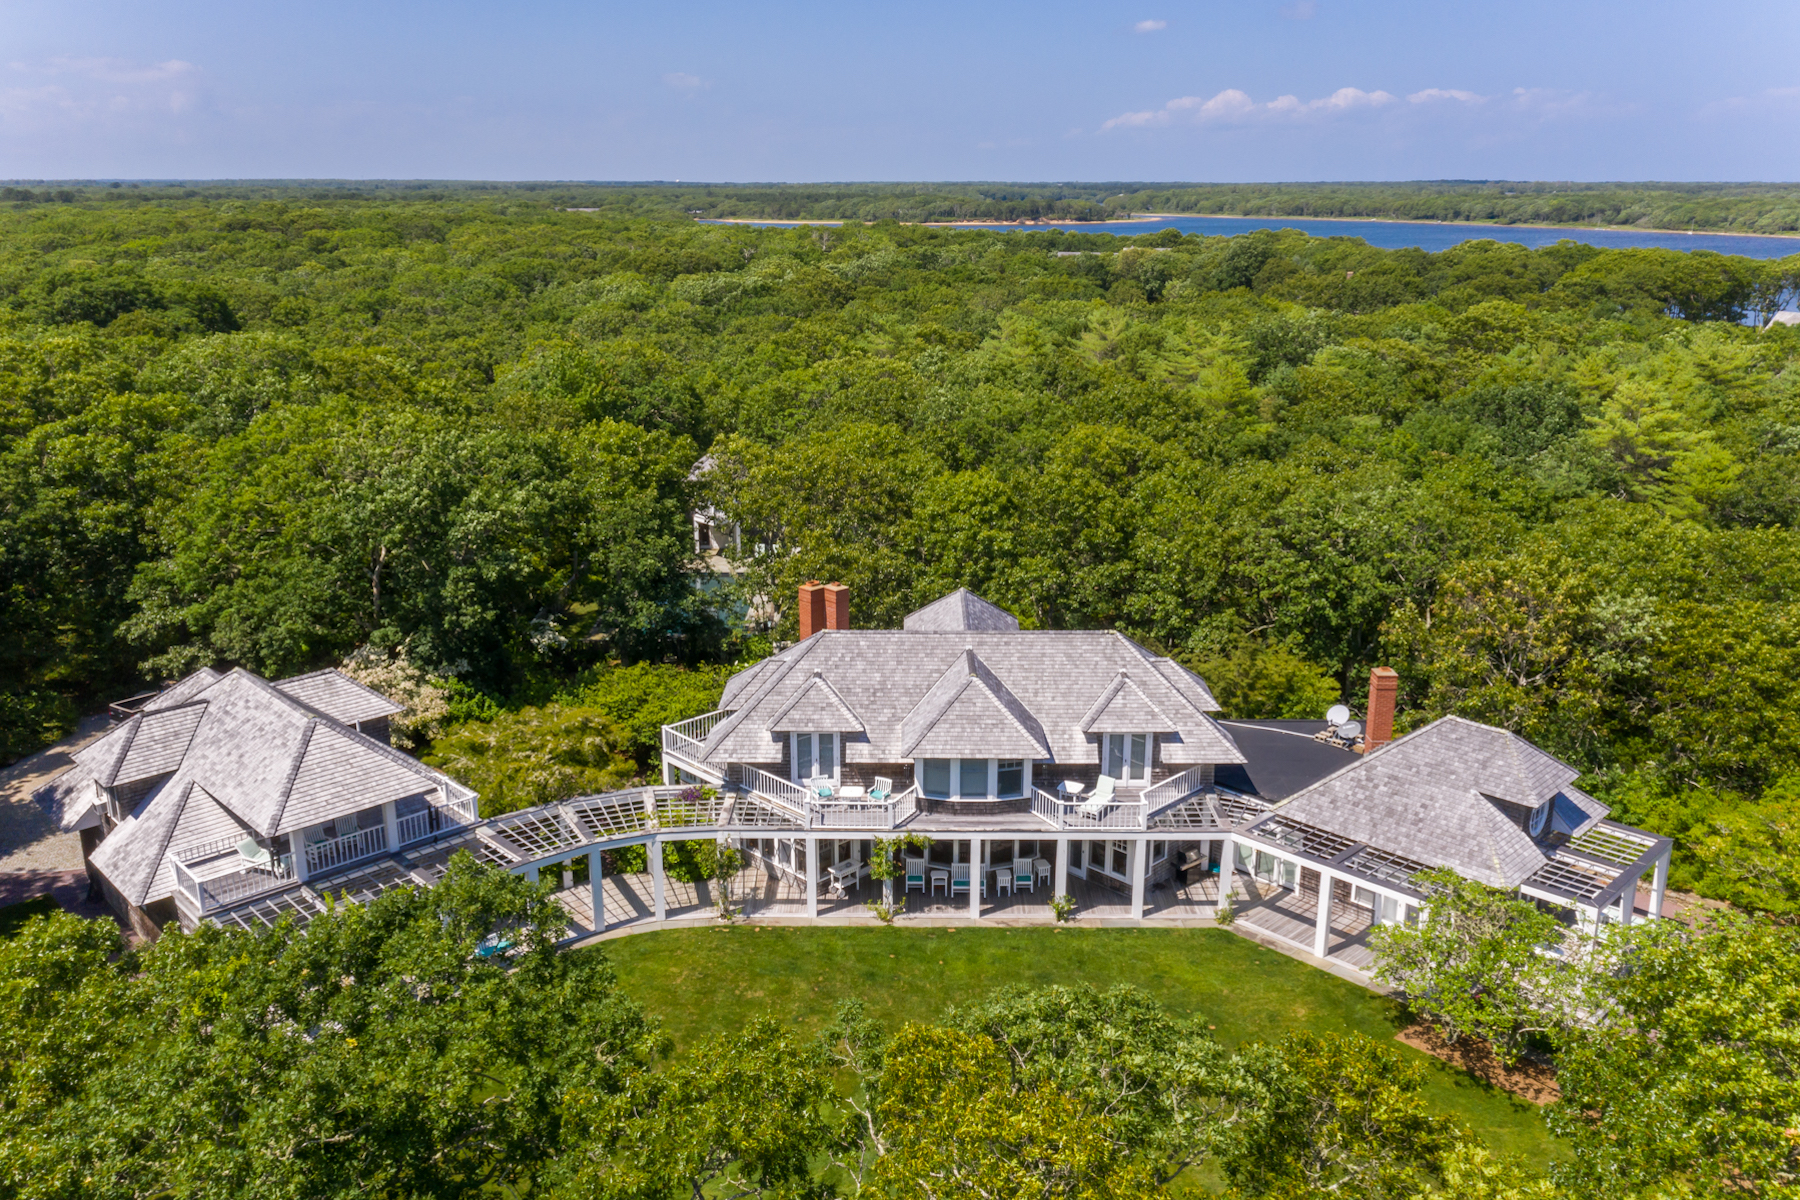 Single Family Homes for Sale at Waterfront Estate on Edgartown Great Pond 32 Boldwater Road & 3 Jacobs Neck Road Edgartown, Massachusetts 02539 United States